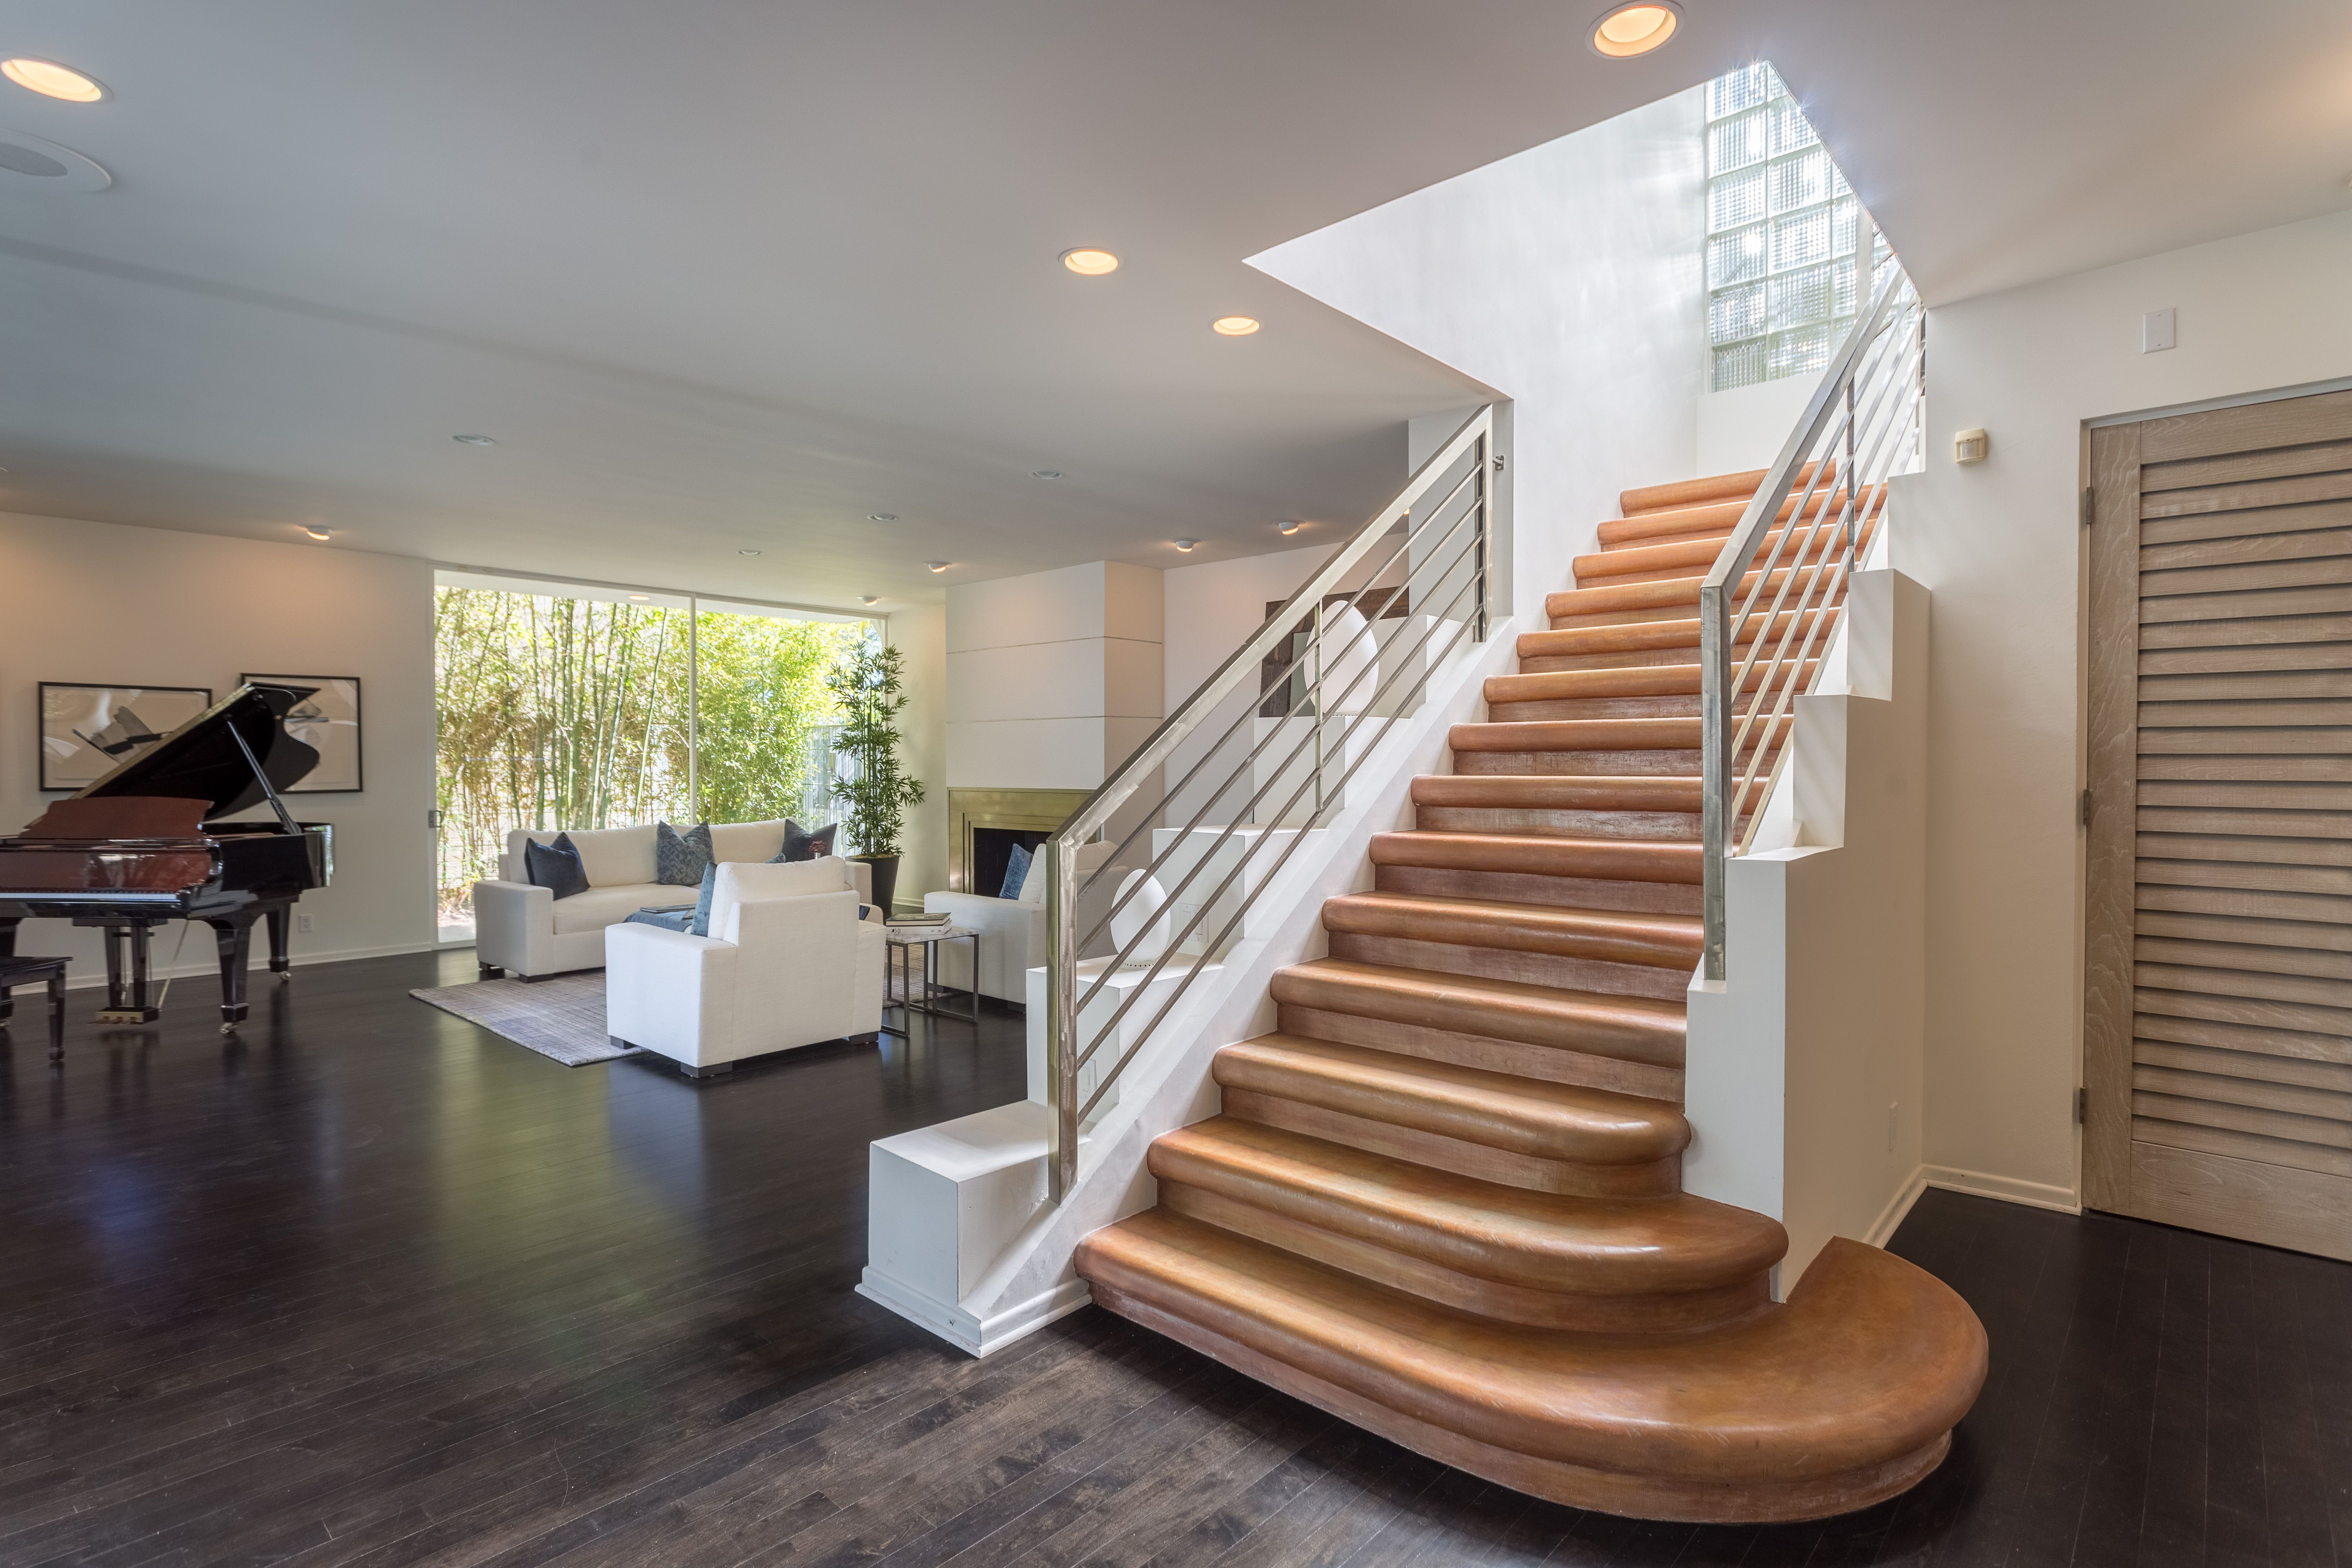 Staircase to second level where there are 2 bedroom suites